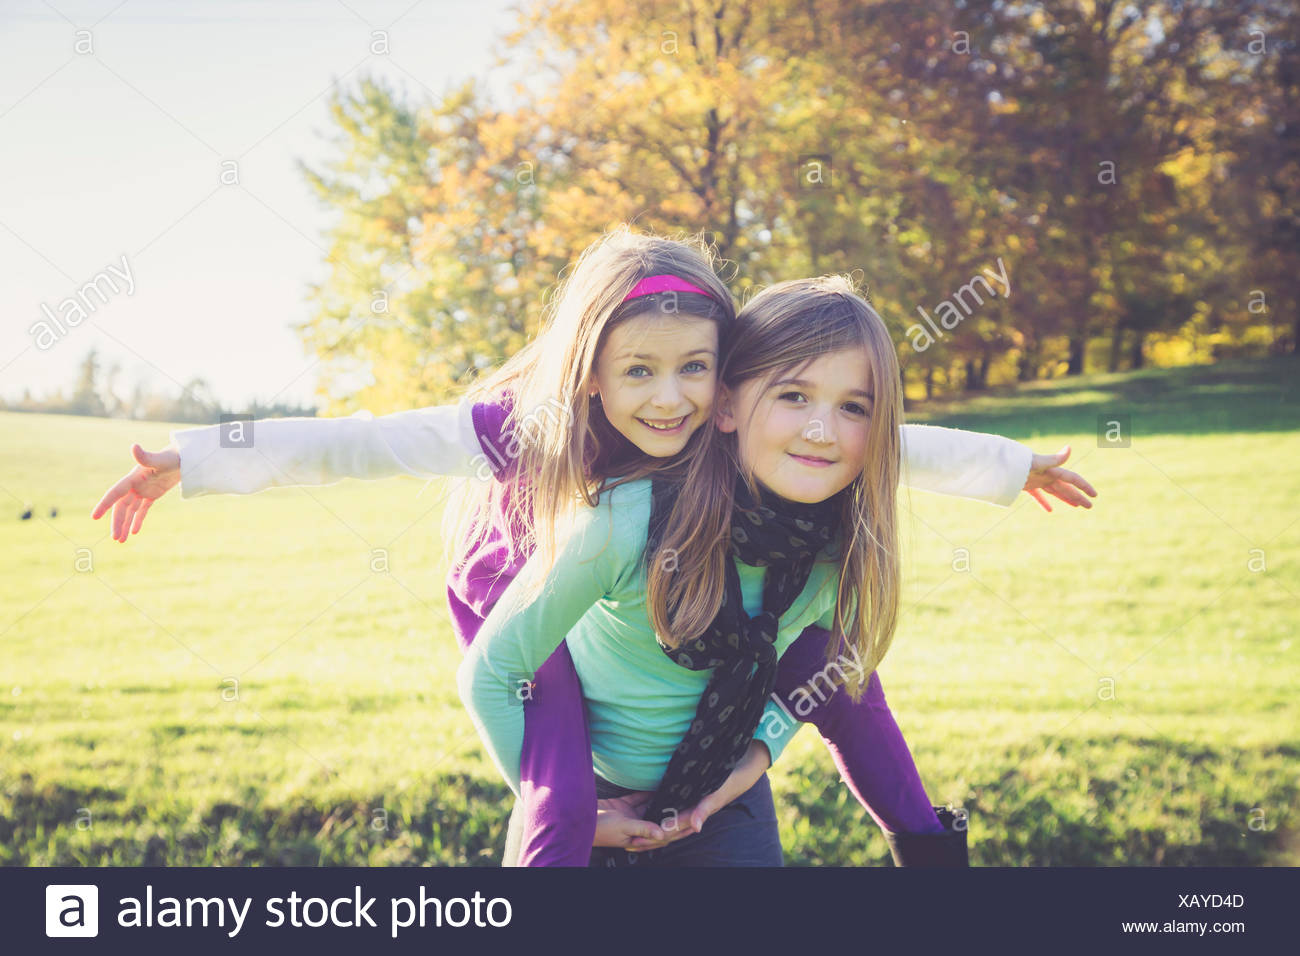 Girl giving another little girl a piggyback - Stock Image